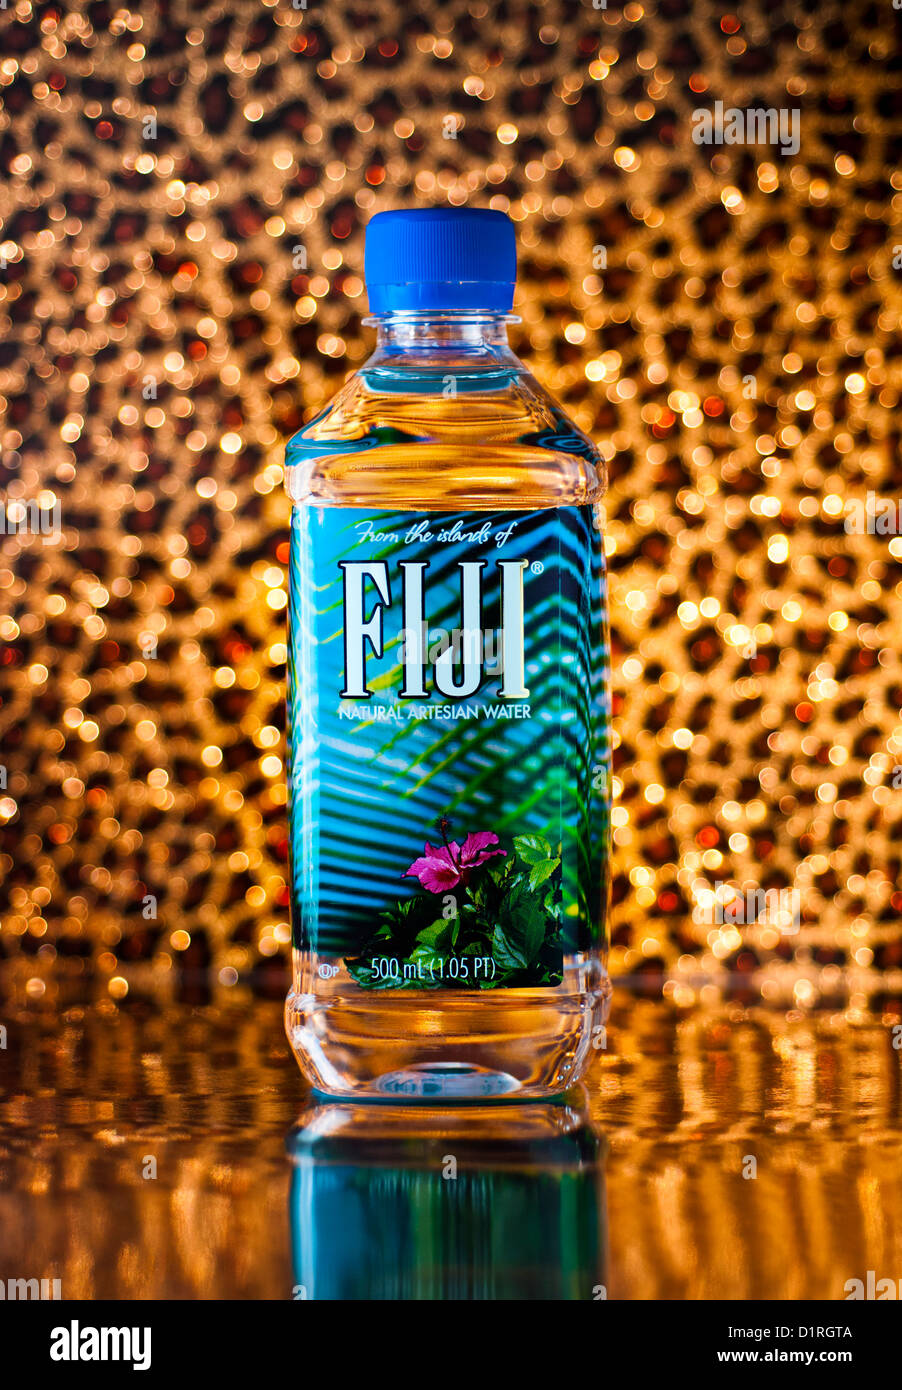 Fiji Water bottle with an artistic background - Stock Image